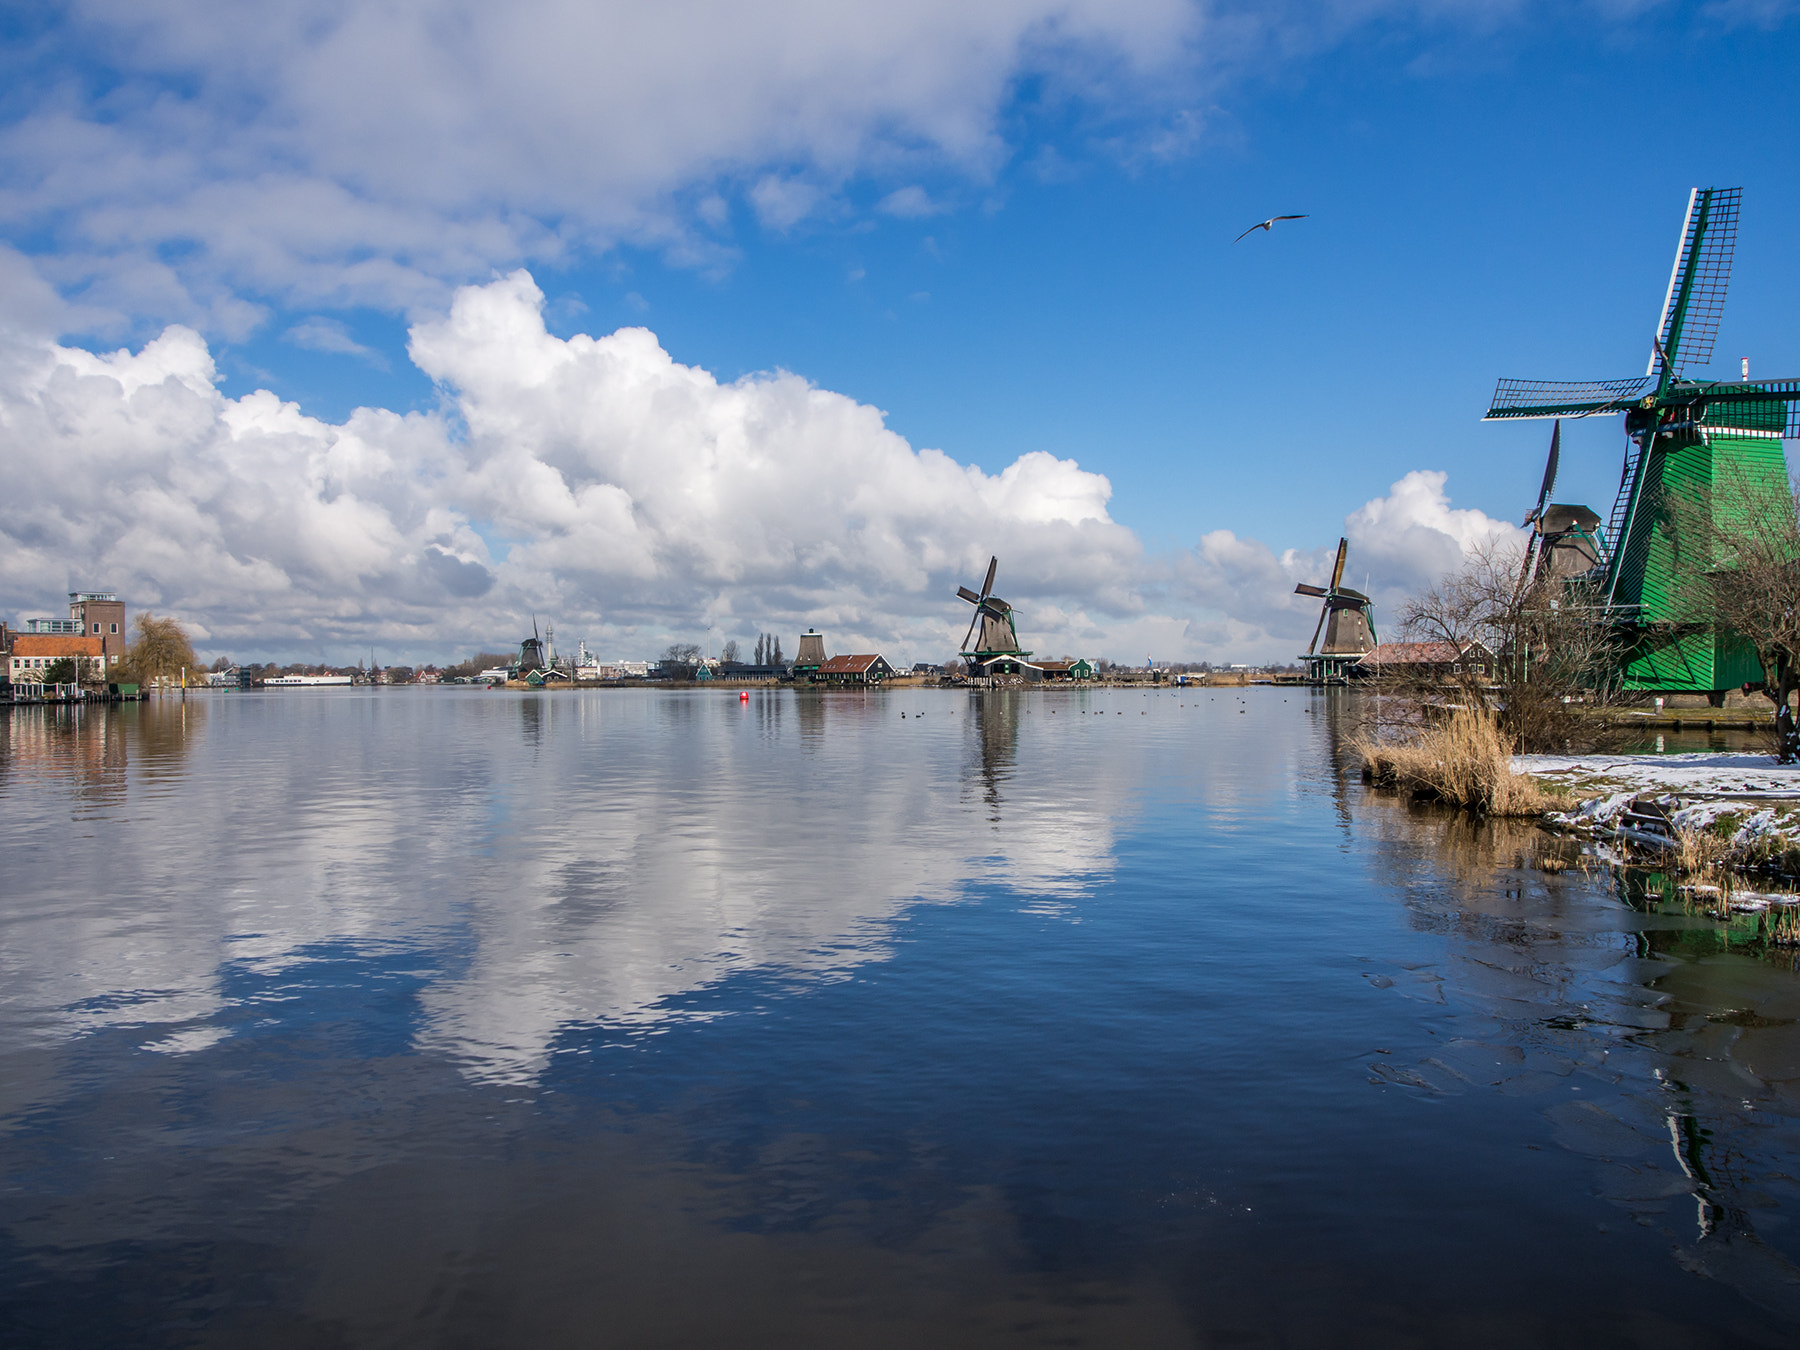 Photograph Zaanse Schans by Stefano Lorenzini on 500px